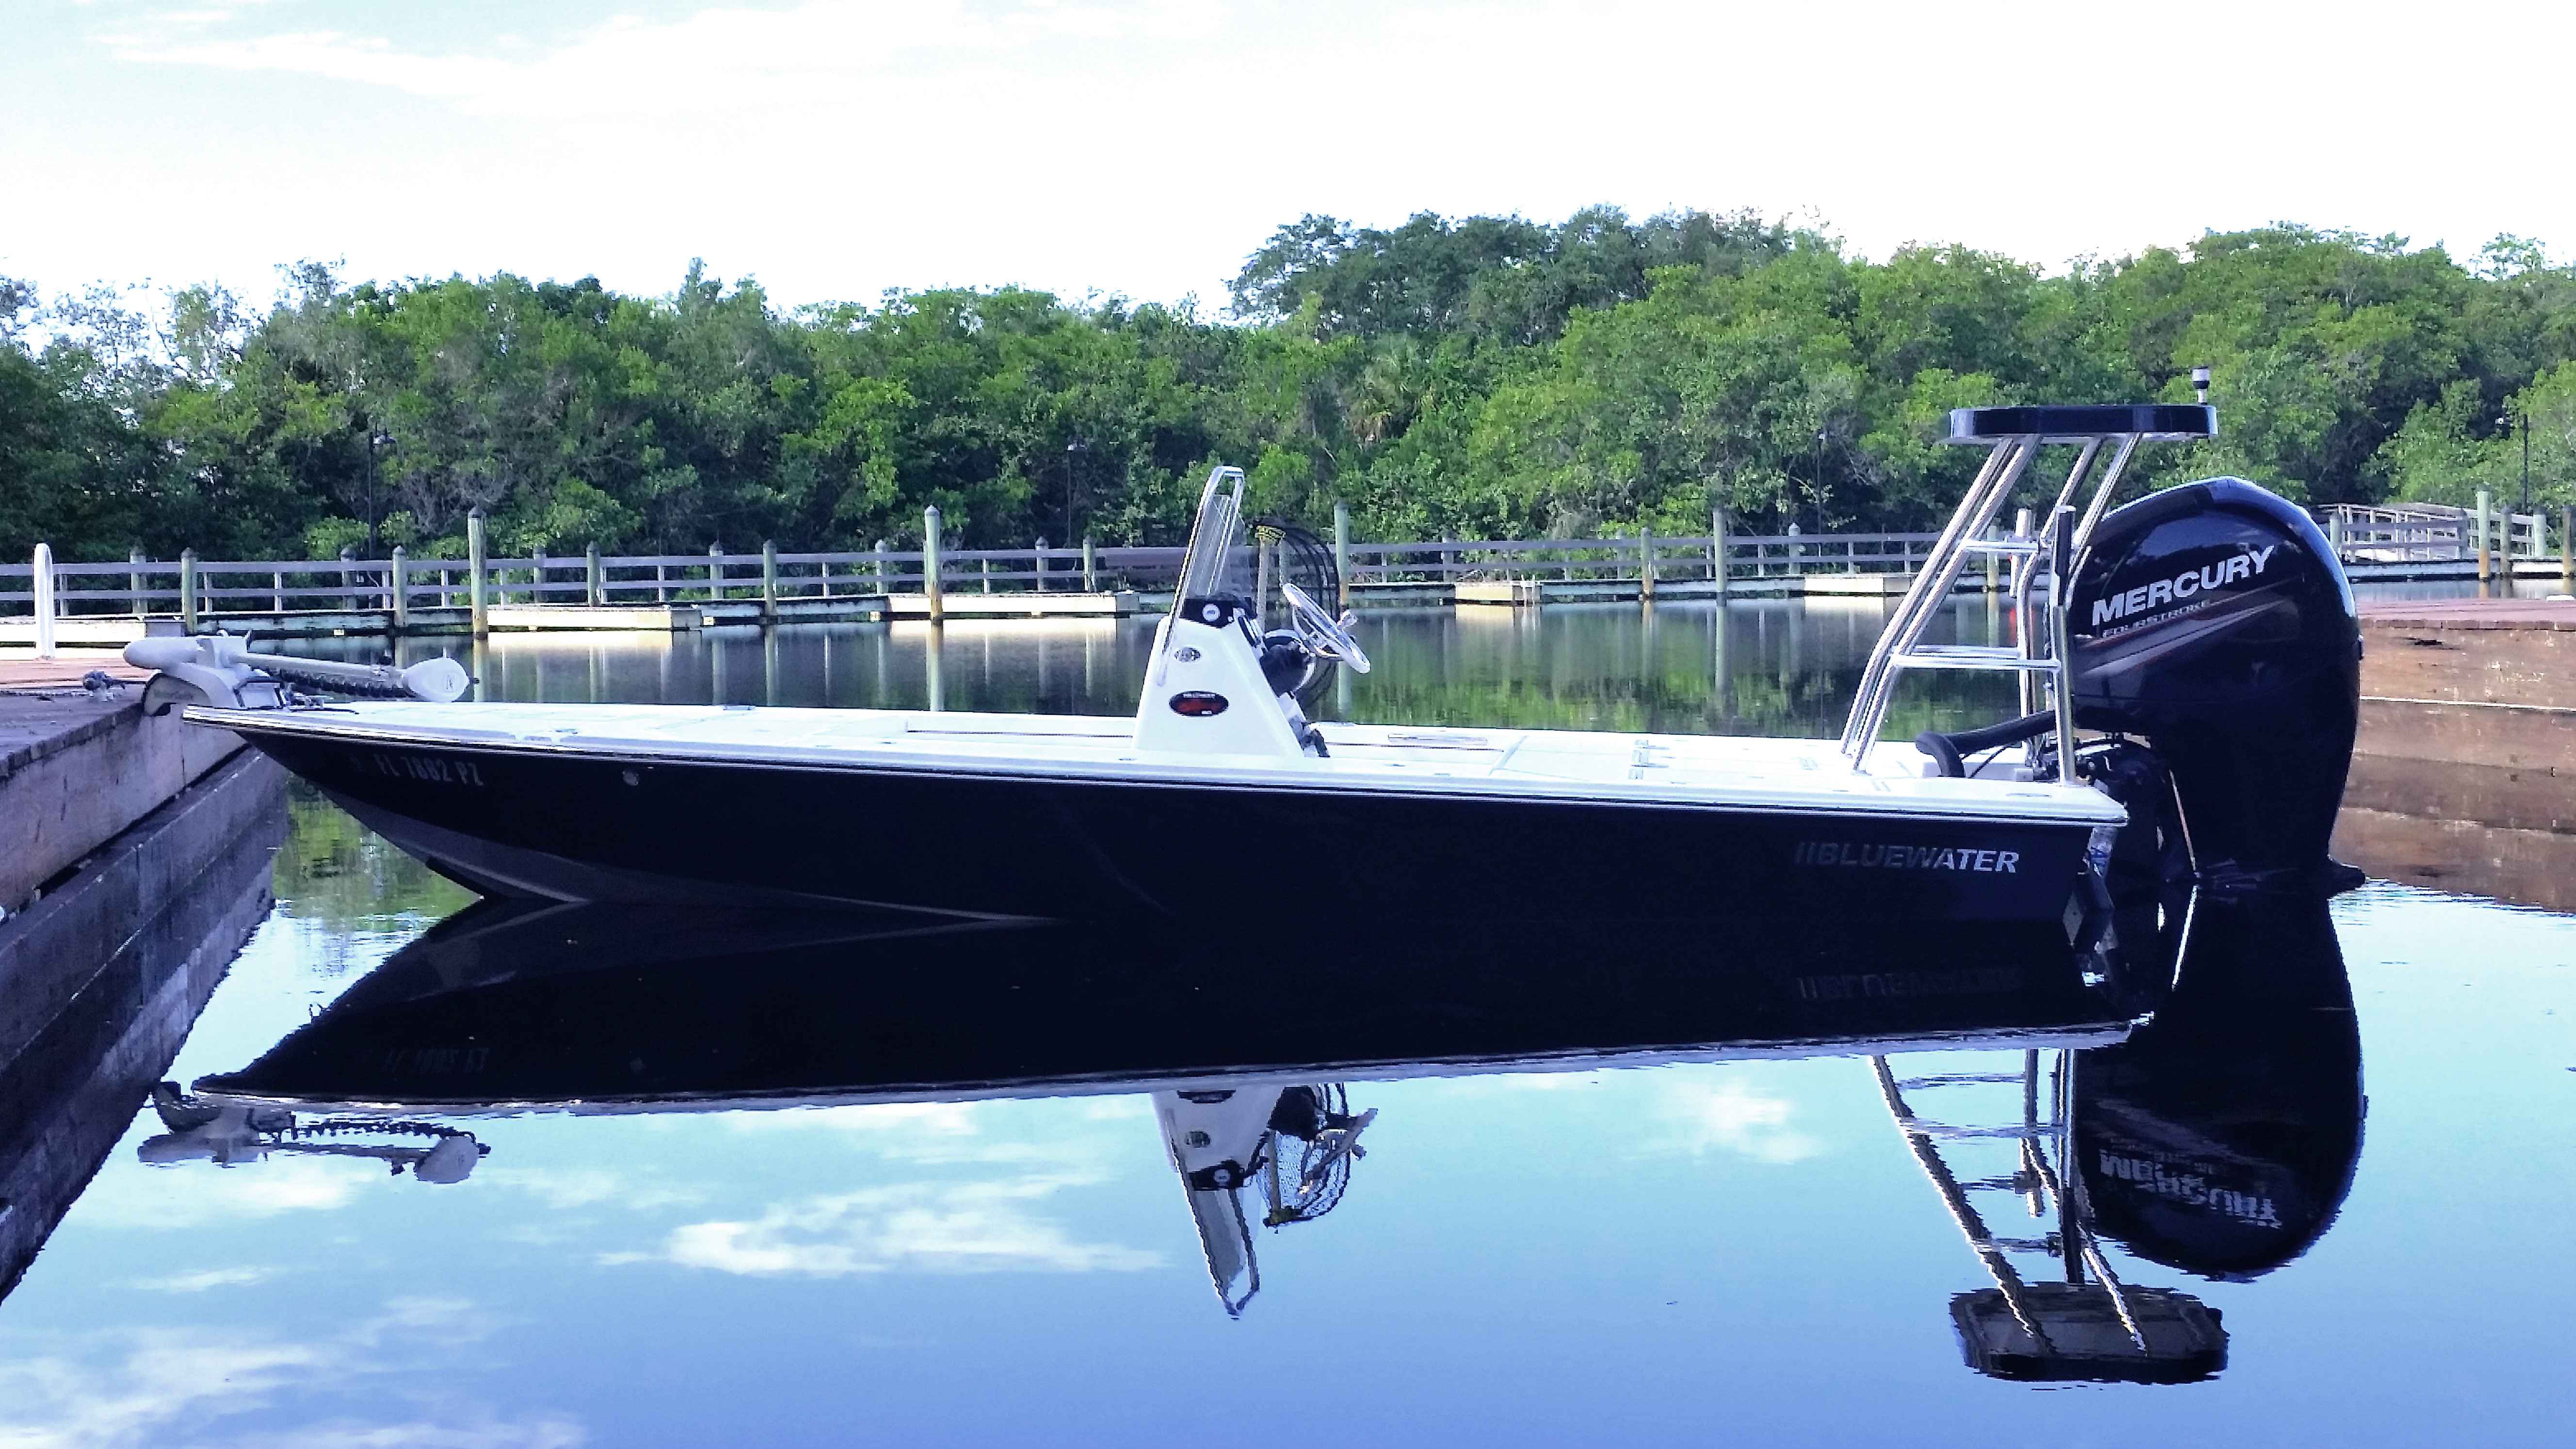 Bluewater Flats Boats - Most Desk Available In An 18 foot flats Boat